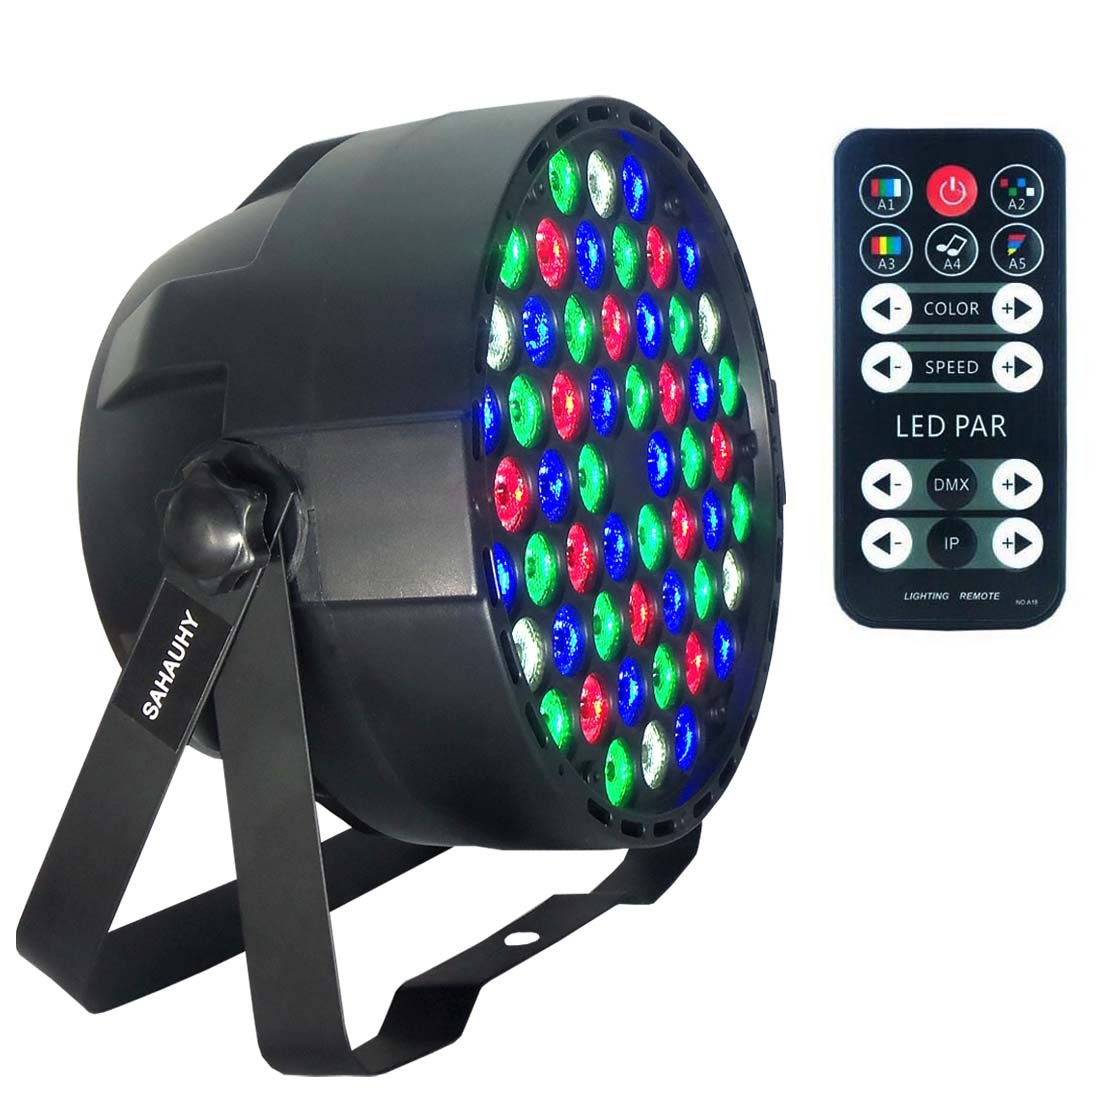 LED Par Lights,SAHAUHY RGBW 54 Led Stage Lights Sound Activated DMX Color Mixing Up Lighting